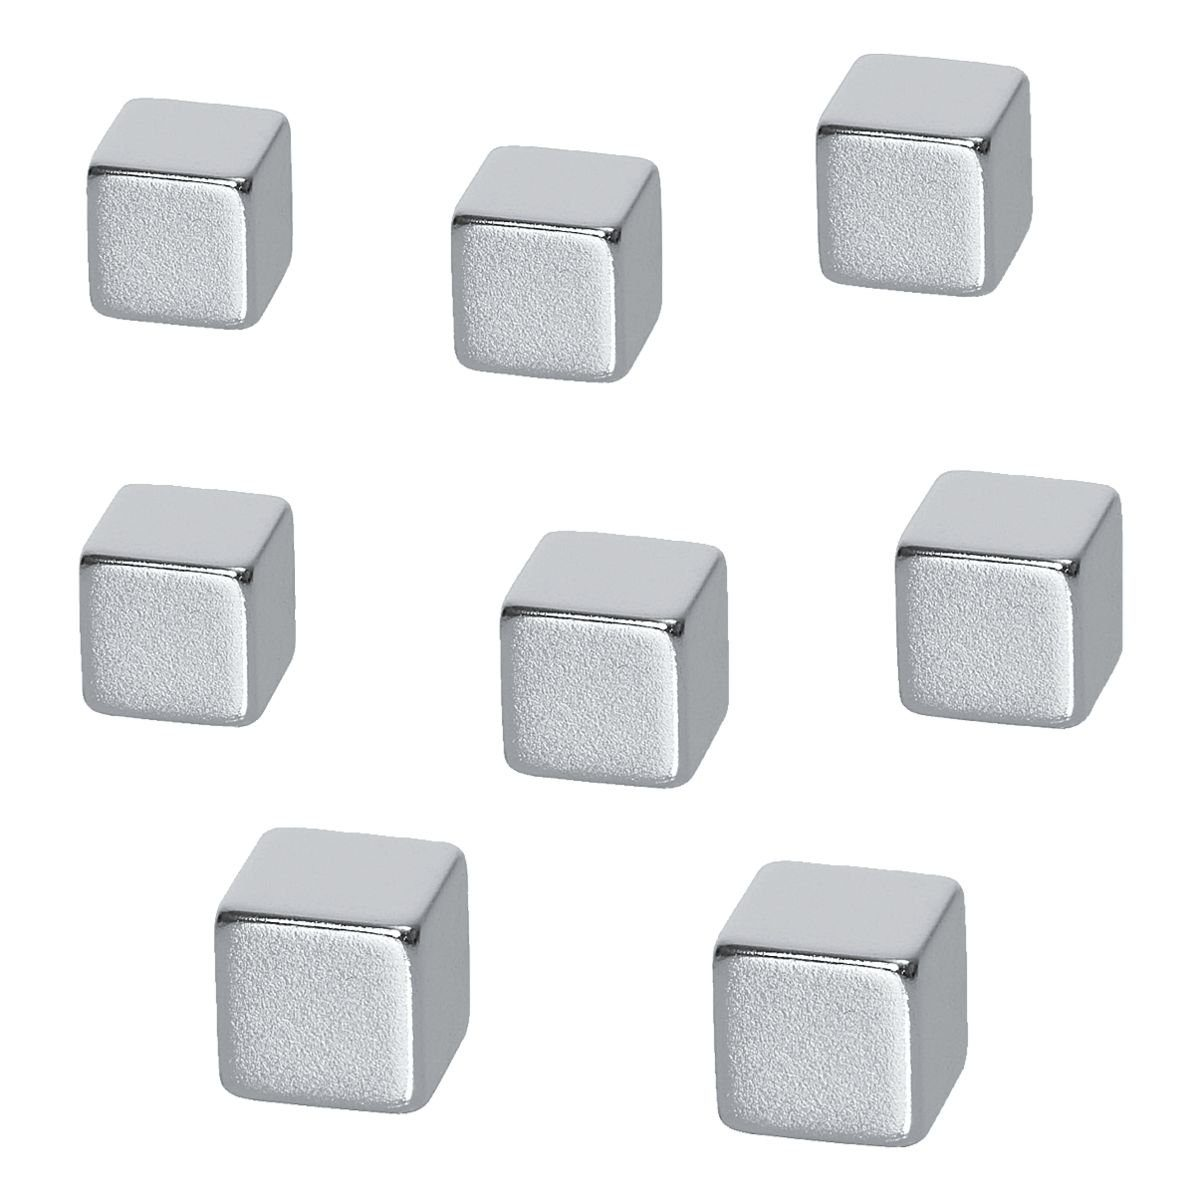 BE!BOARD 8er-Set Neodym Magnete B3101 »Cube«